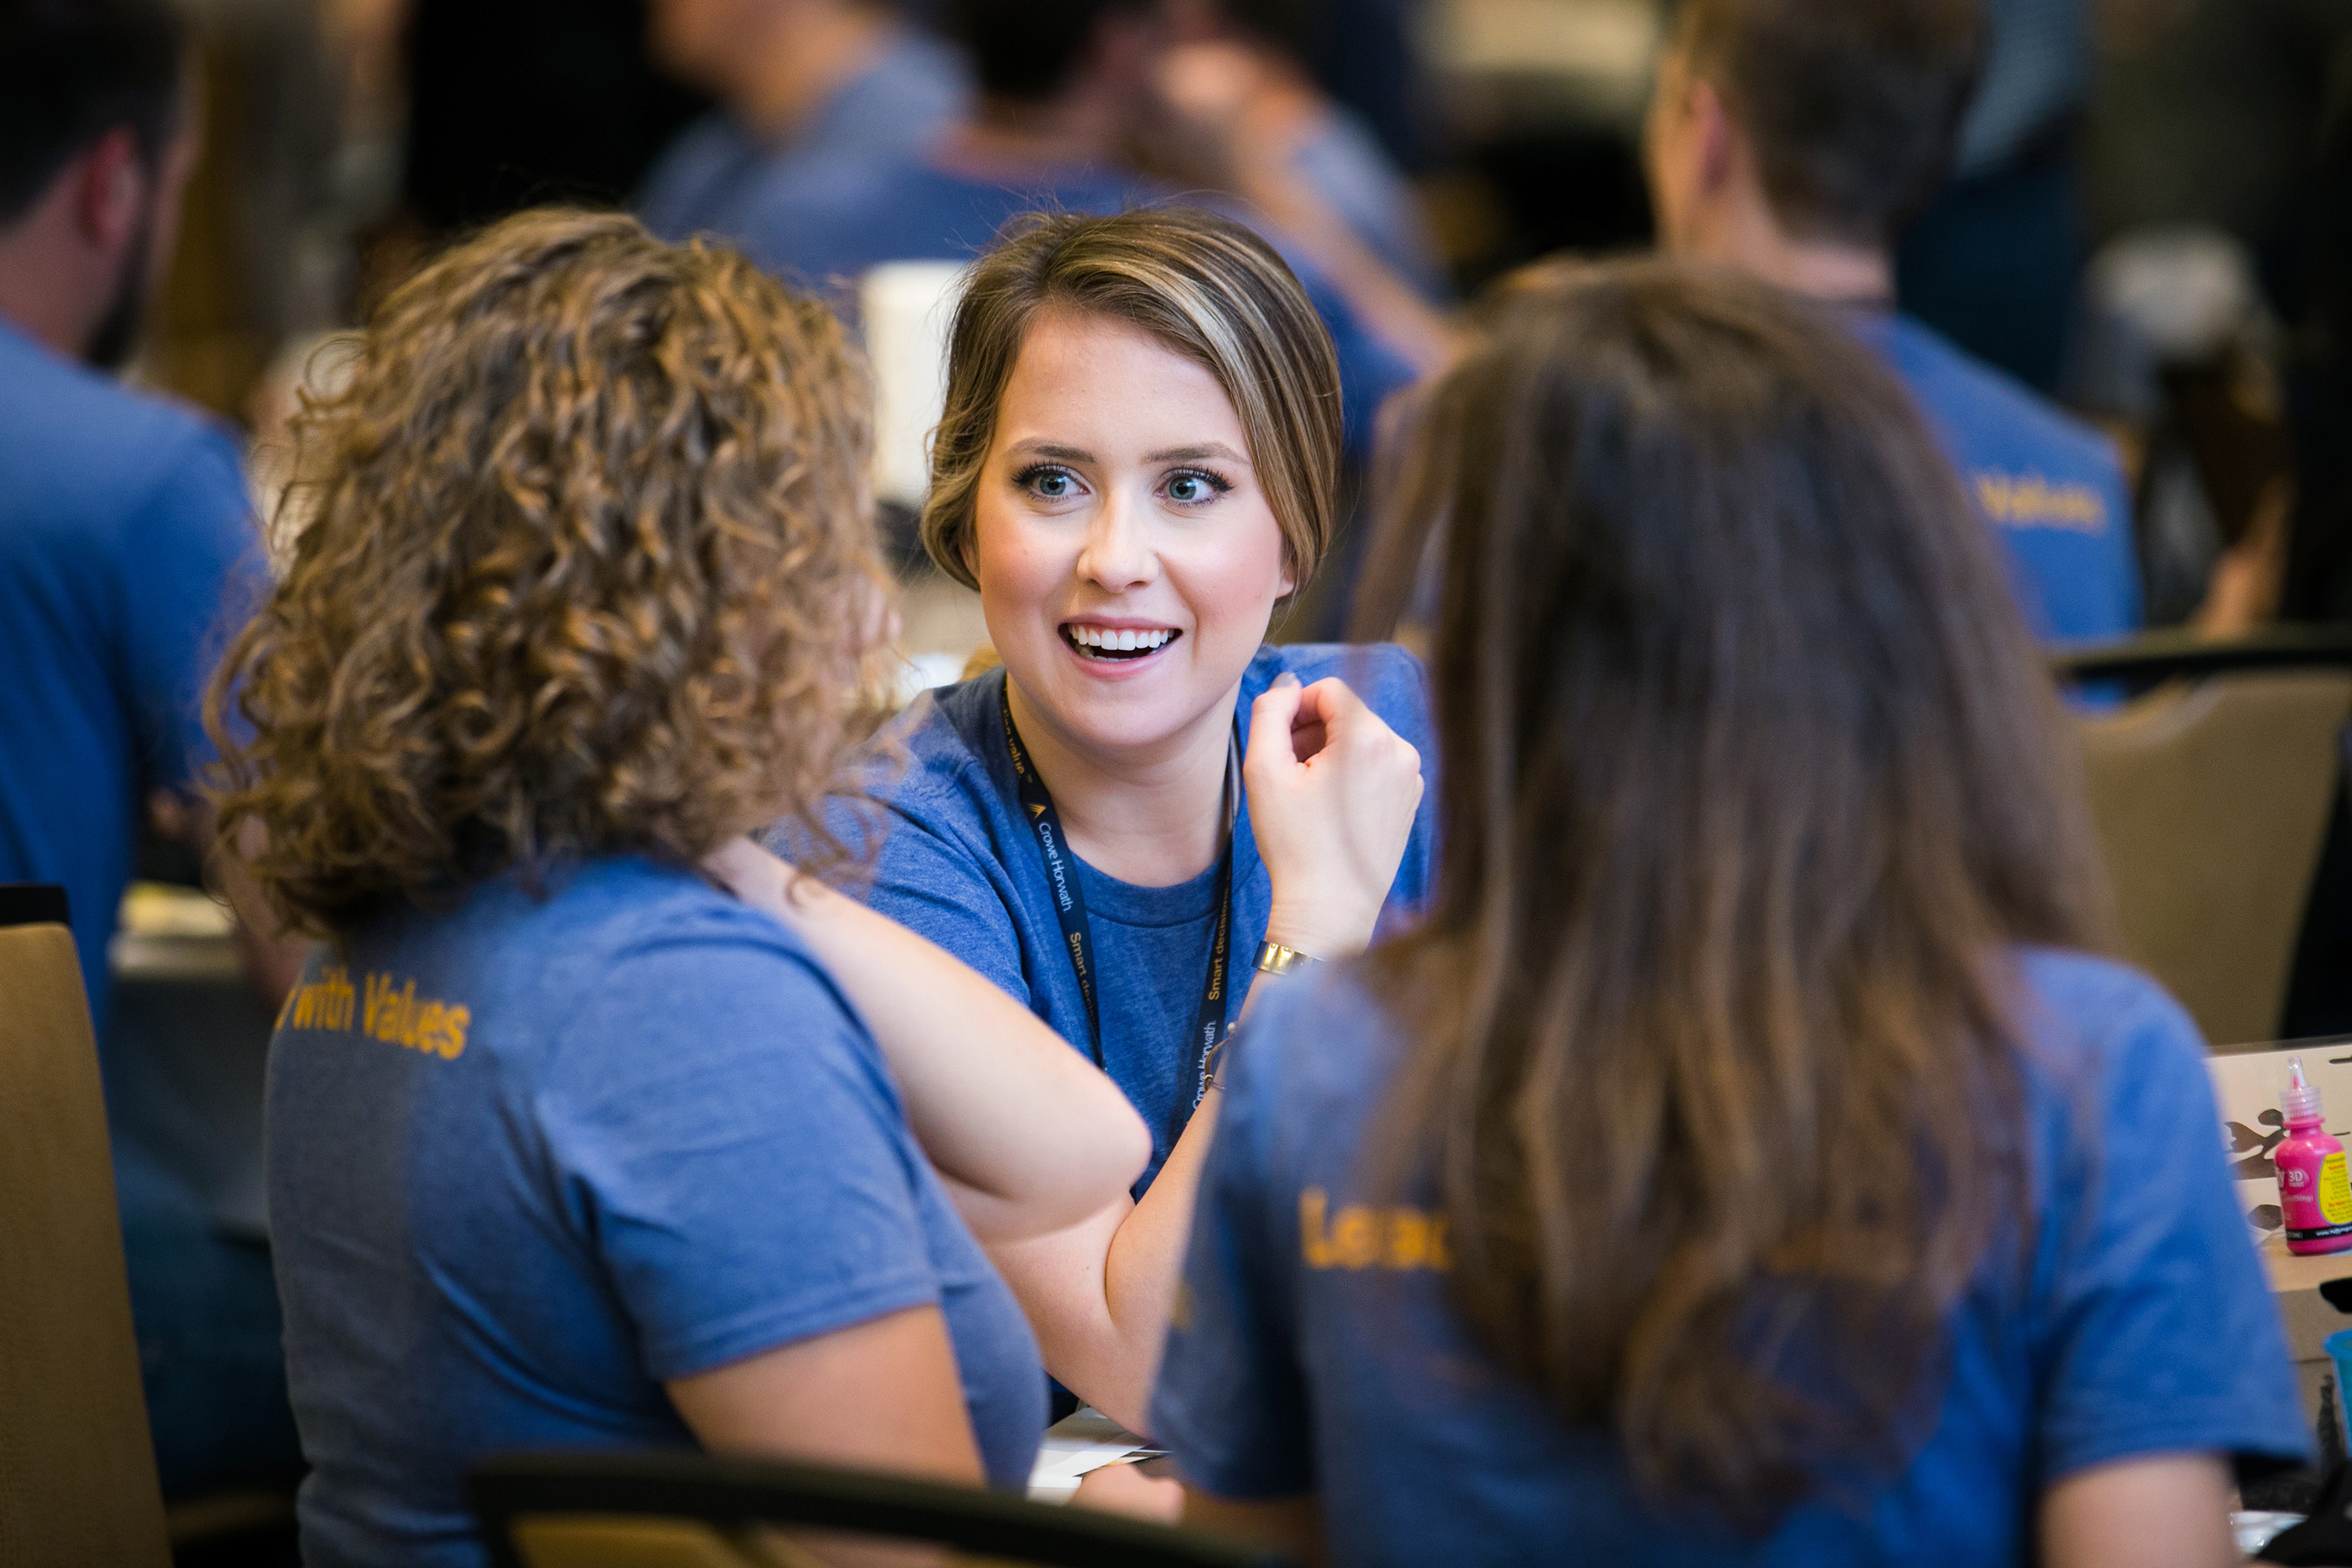 Crowe personnel network and connect with colleagues from across the country at Promotions Academy in Atlanta.